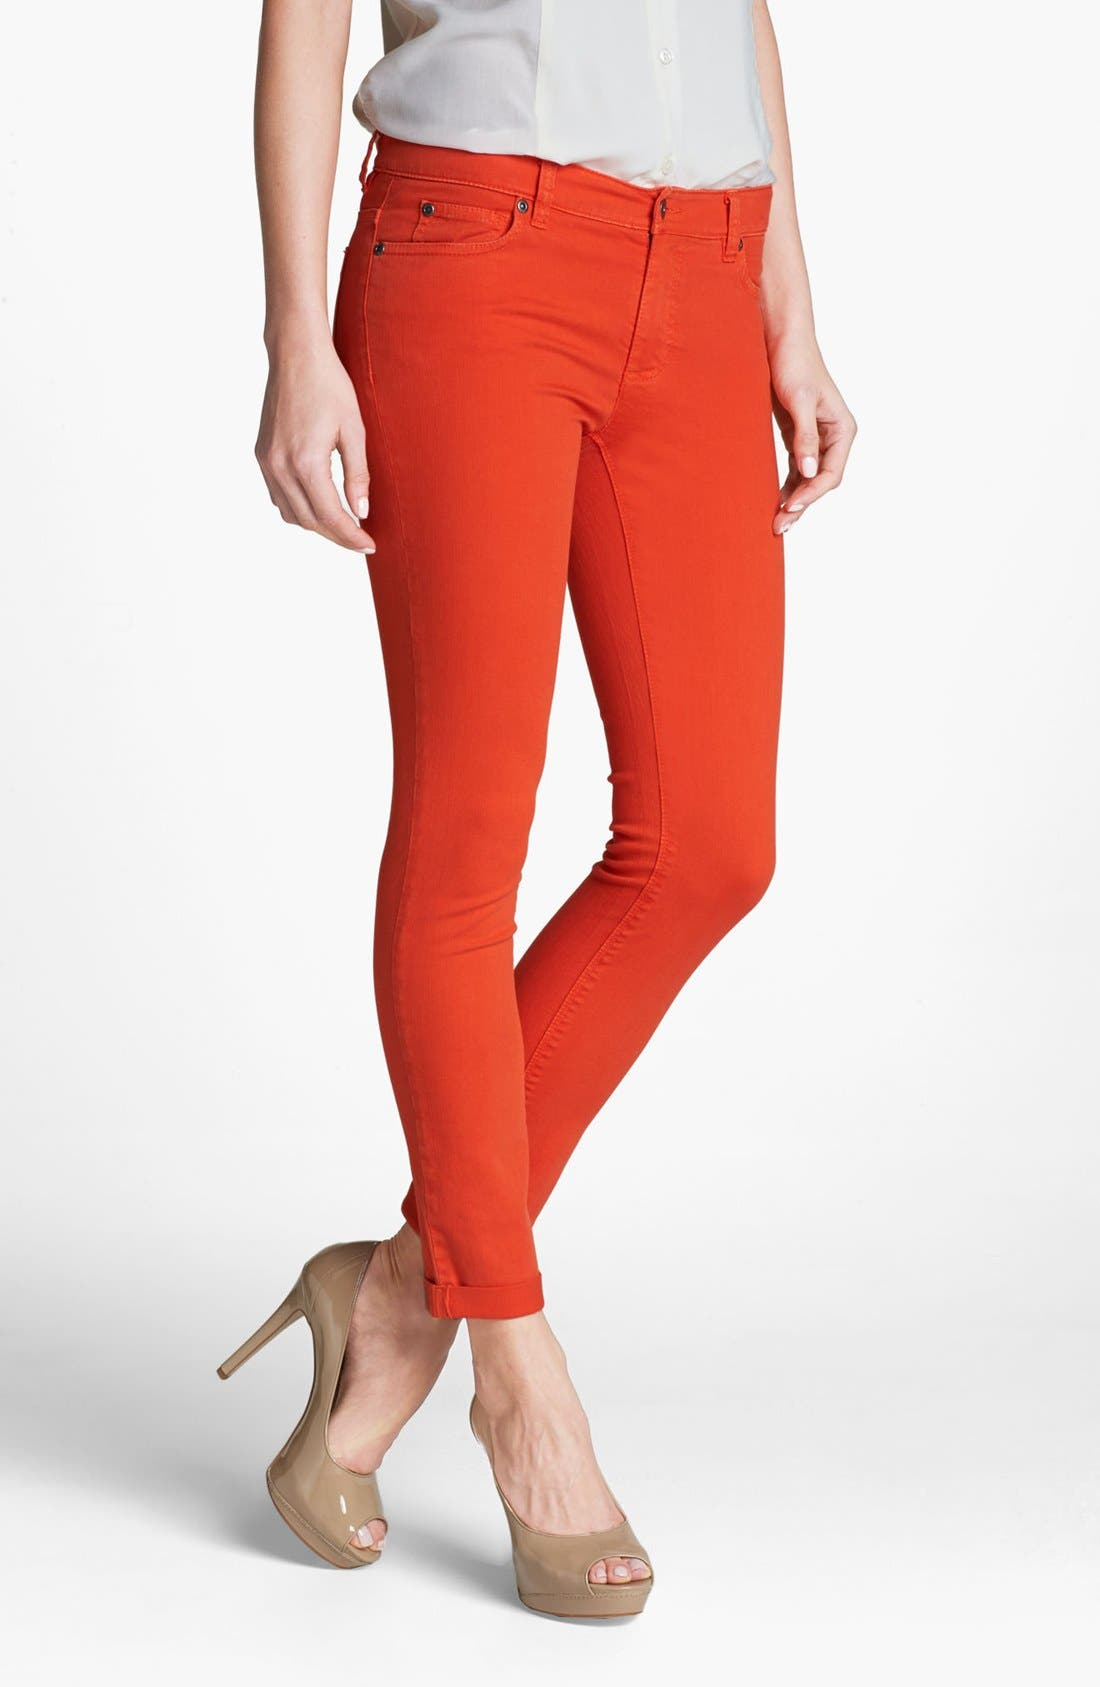 Main Image - Two by Vince Camuto Twill Jeans